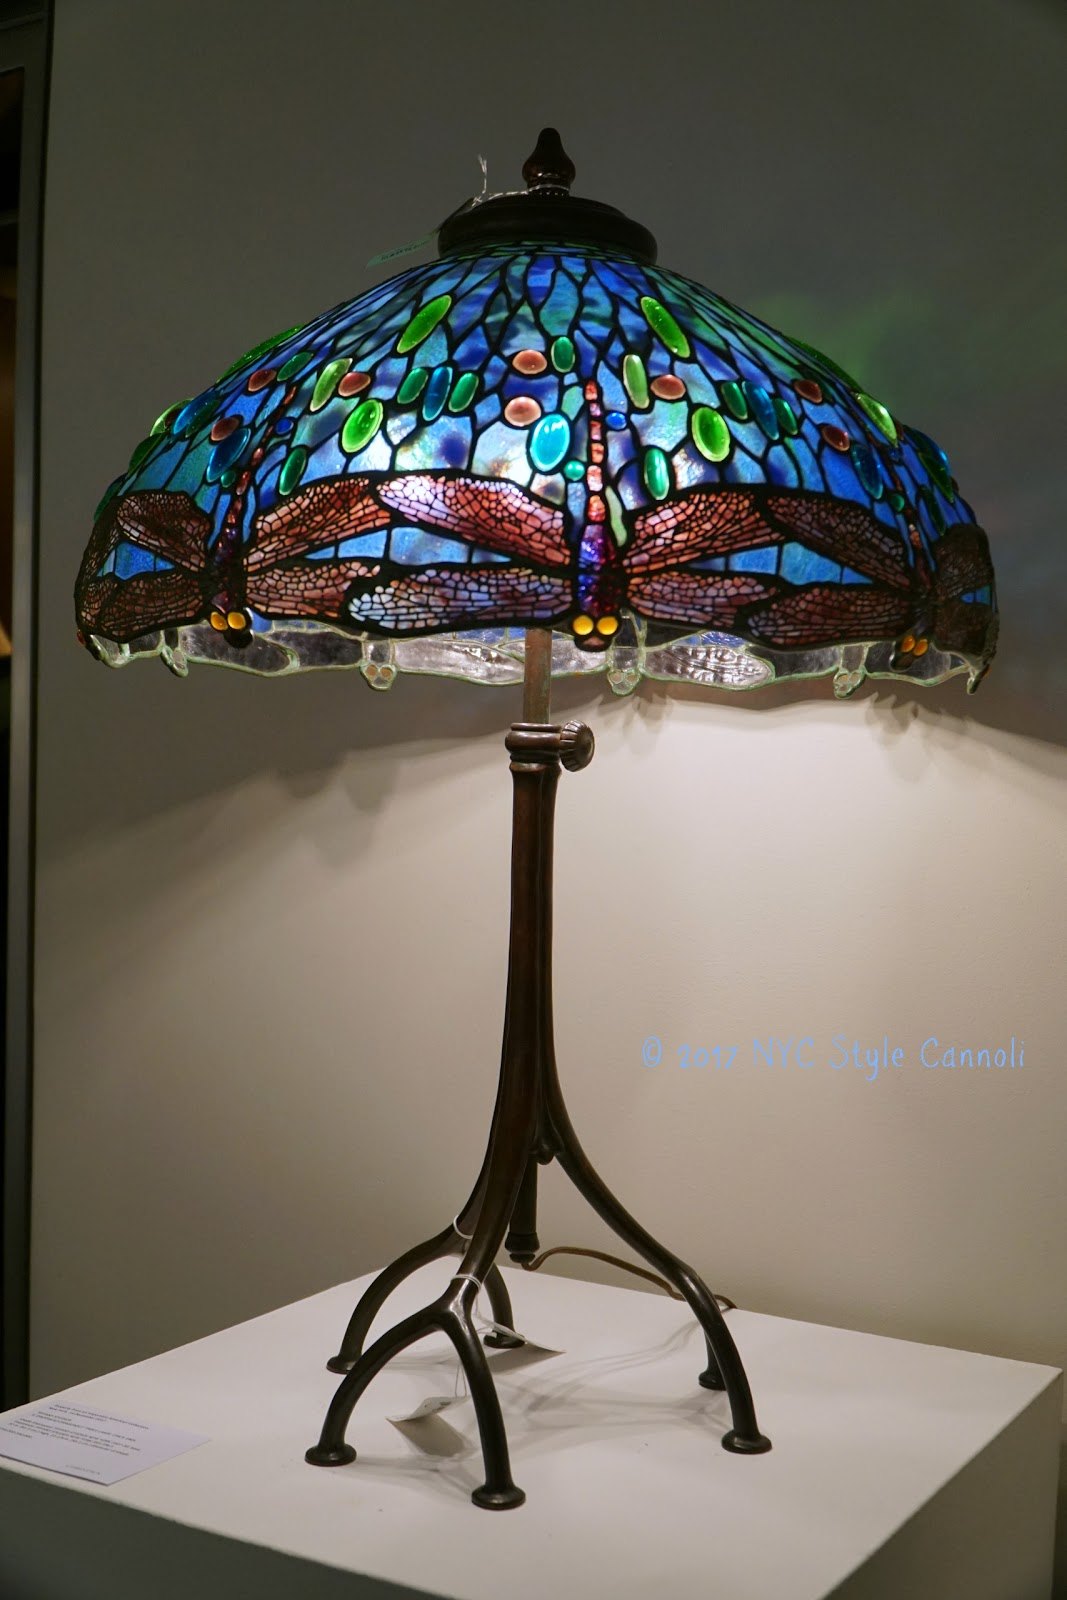 Louis Comfort Tiffany Lamps At Christieu0027s New York